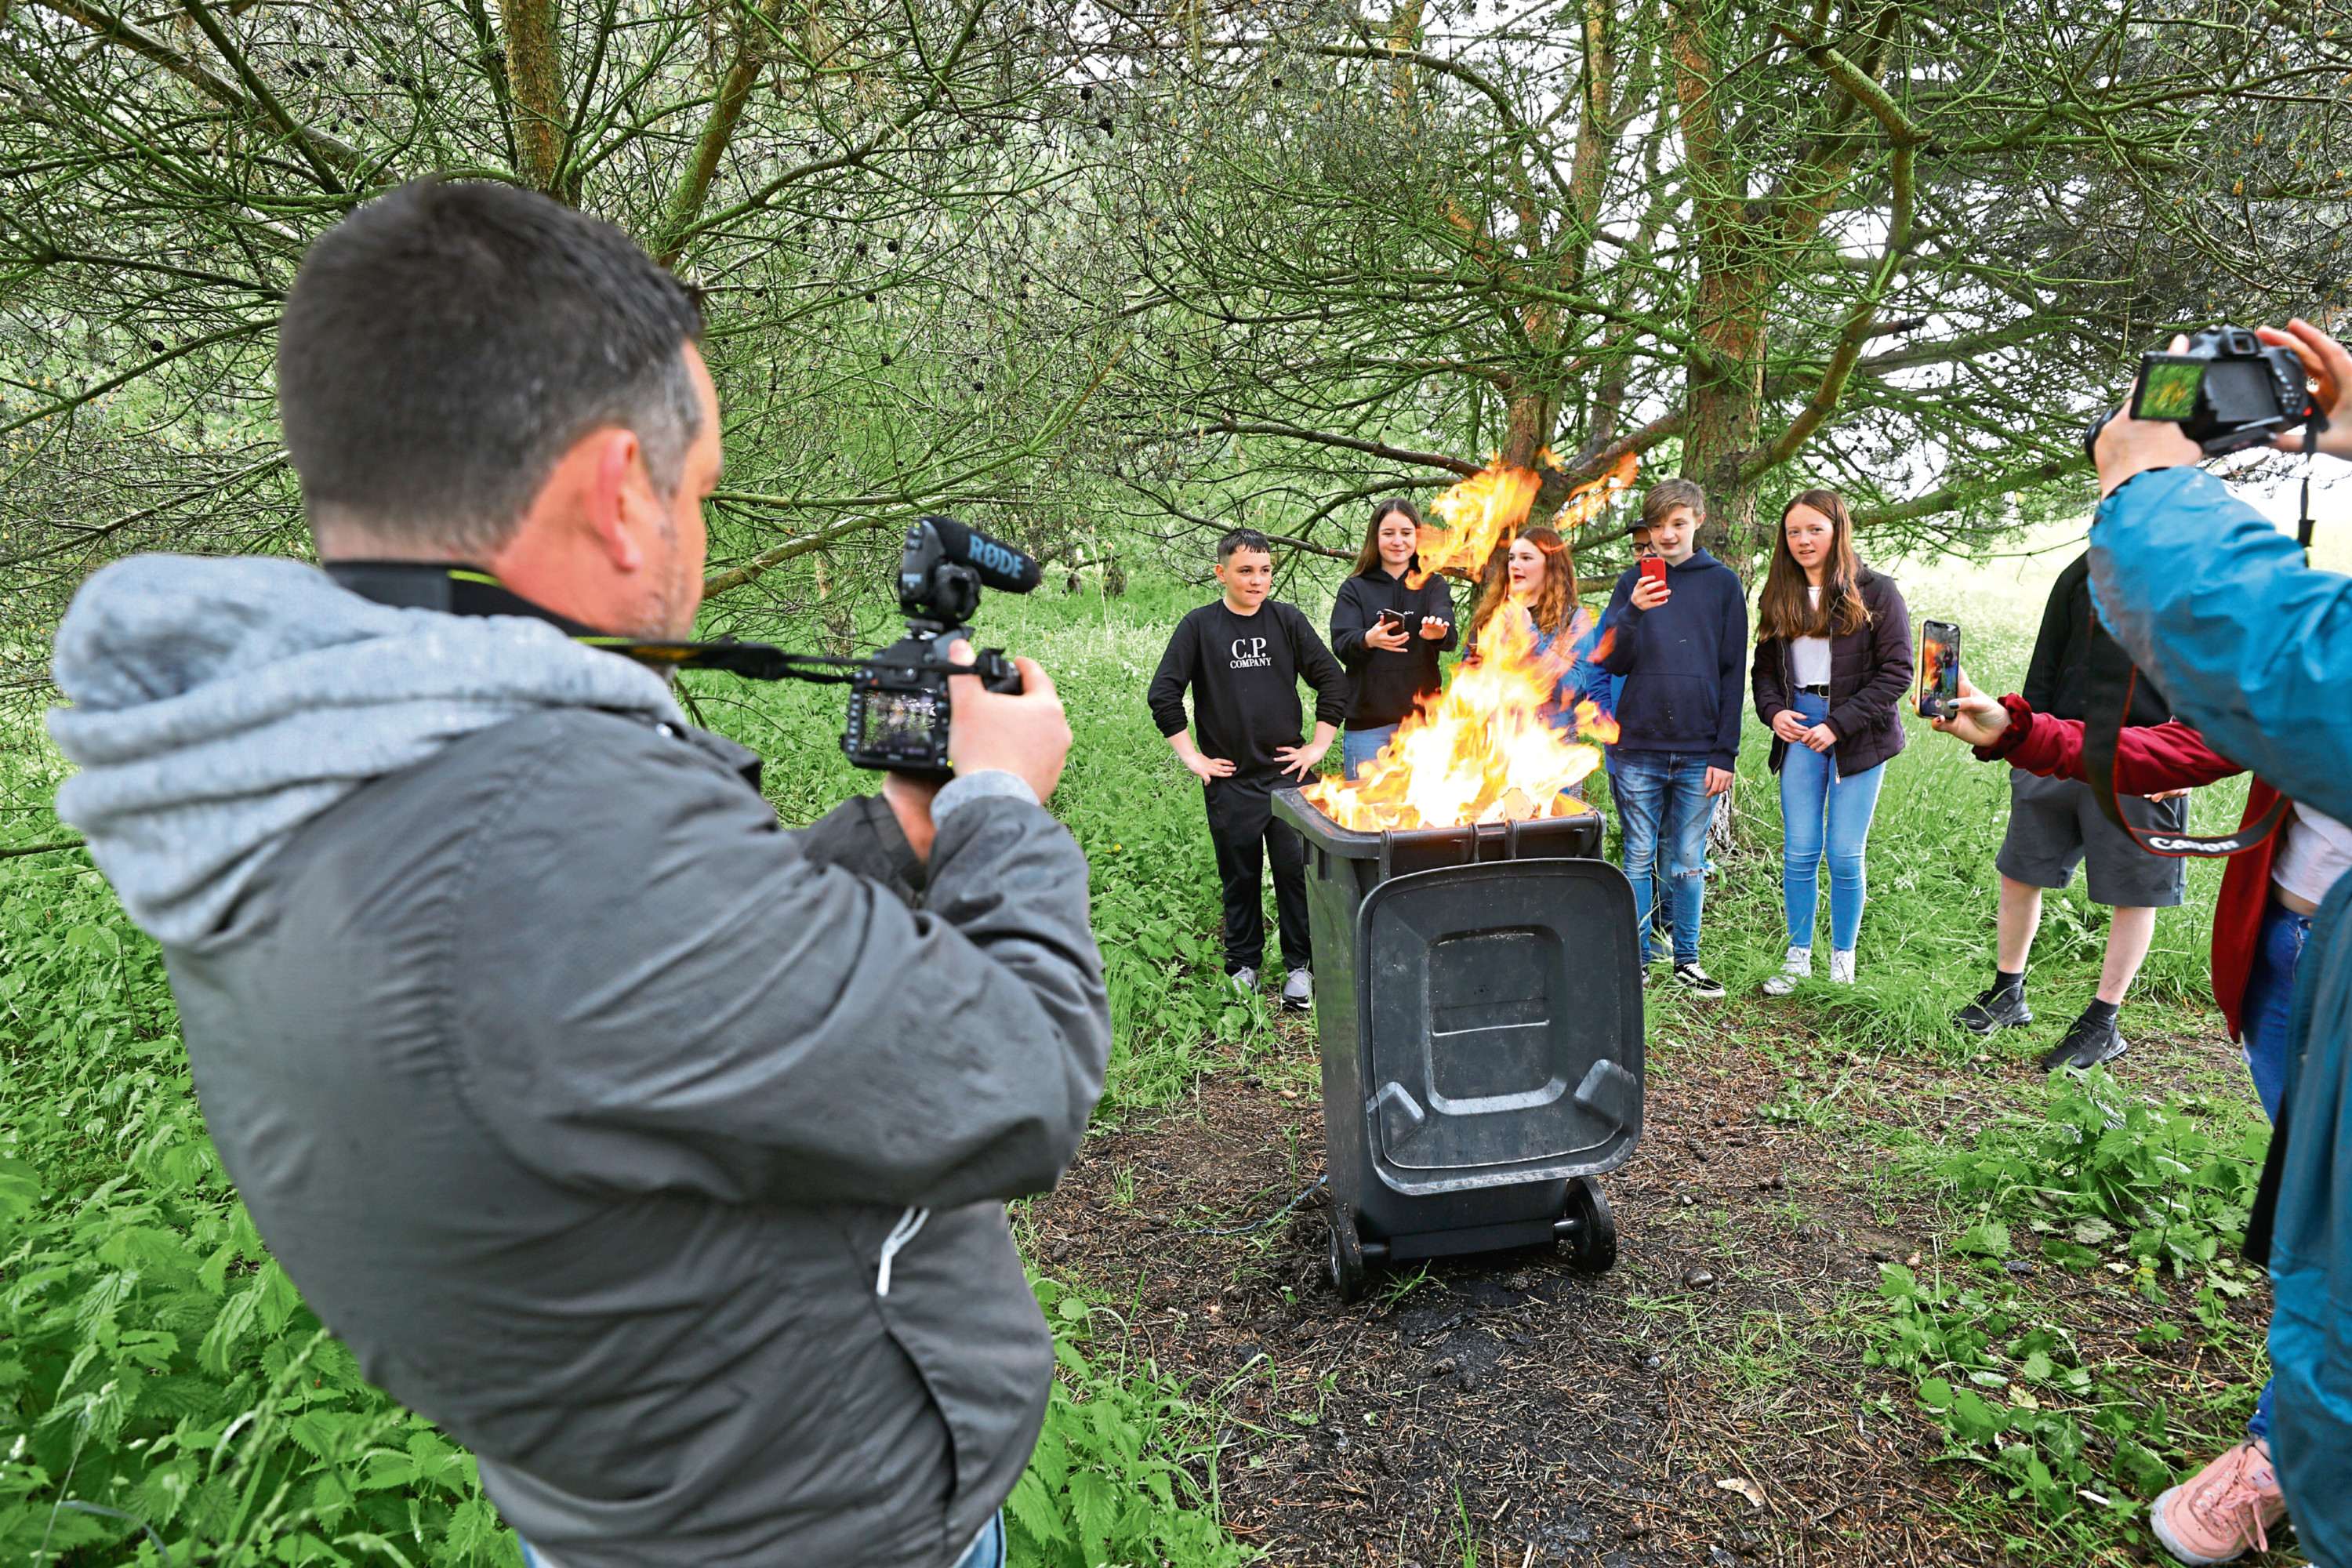 Constable Andy Hutton filming pupils from Braeview Academy drama department for the fire safety film.